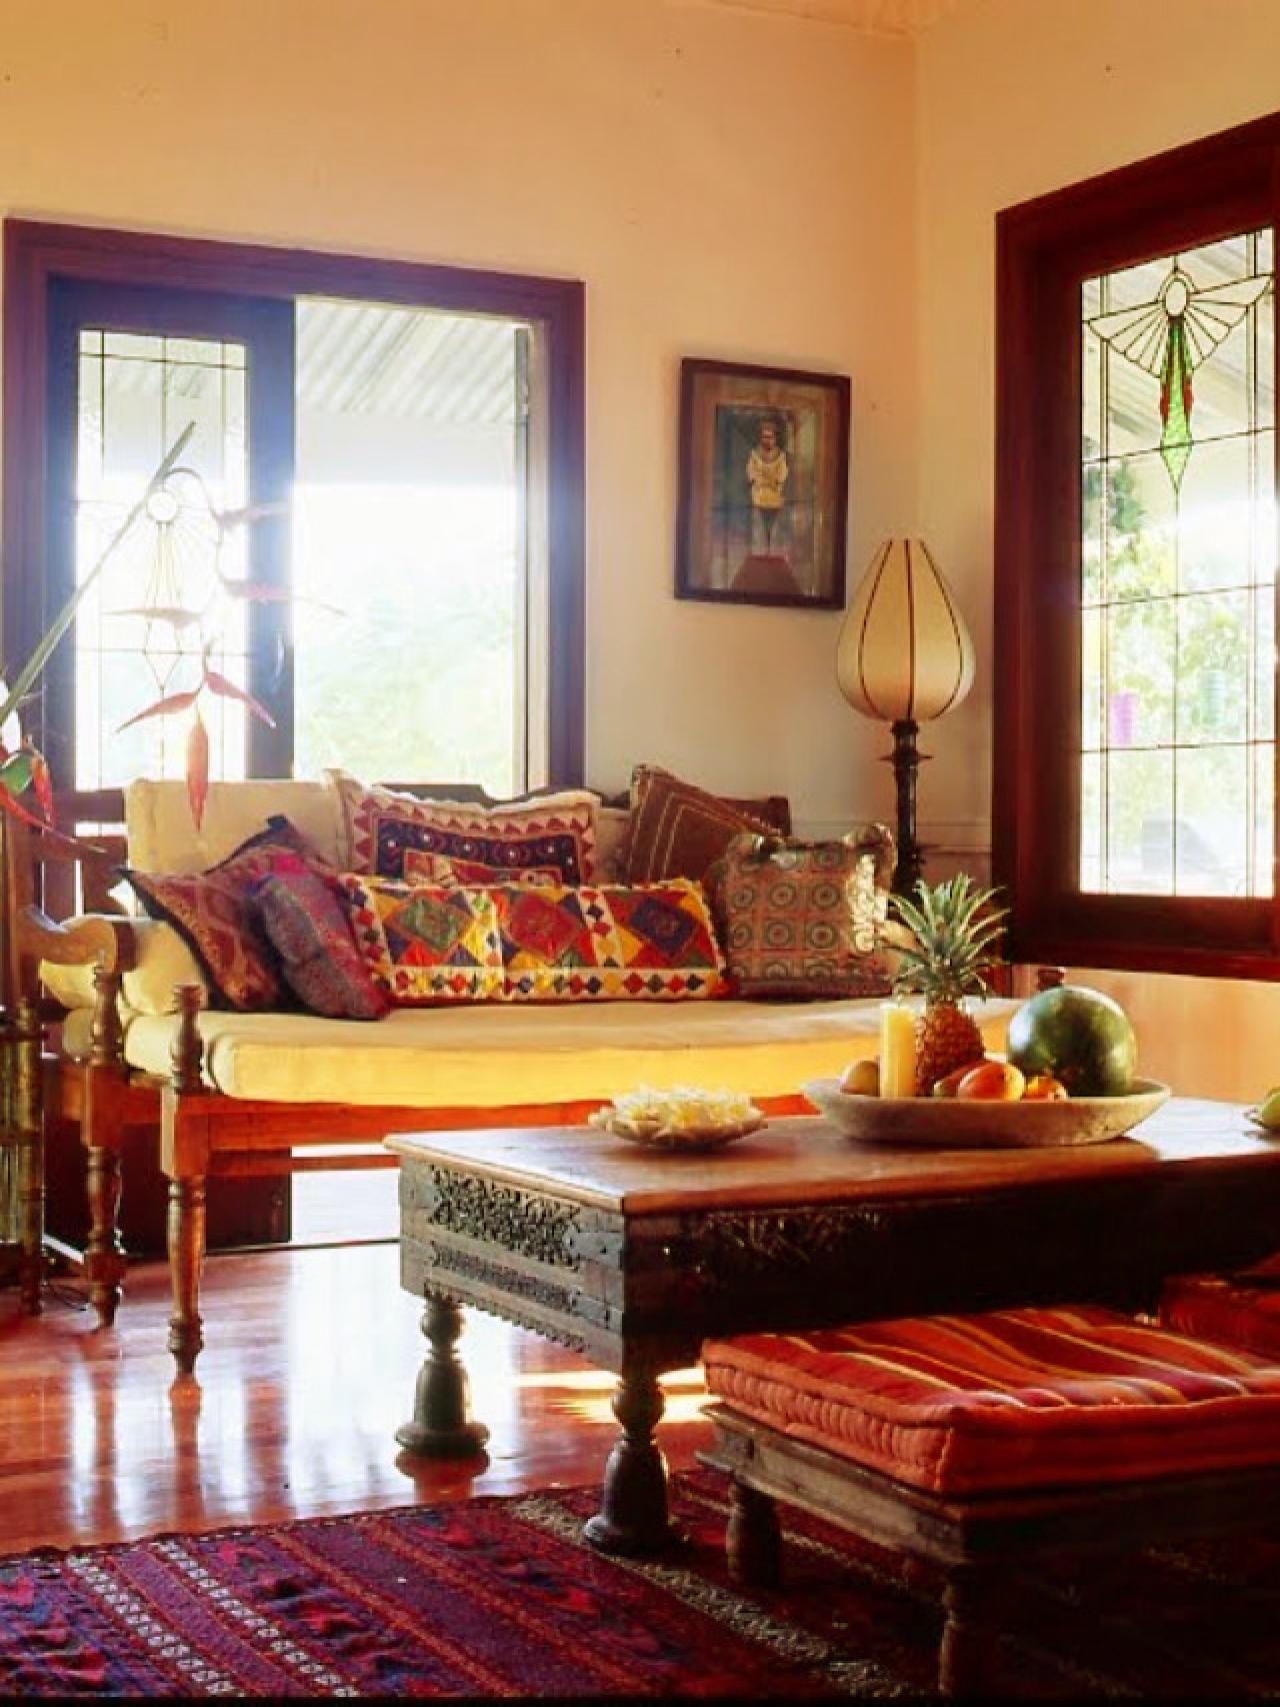 12 spaces inspired by india interior design styles and for Indian interior design